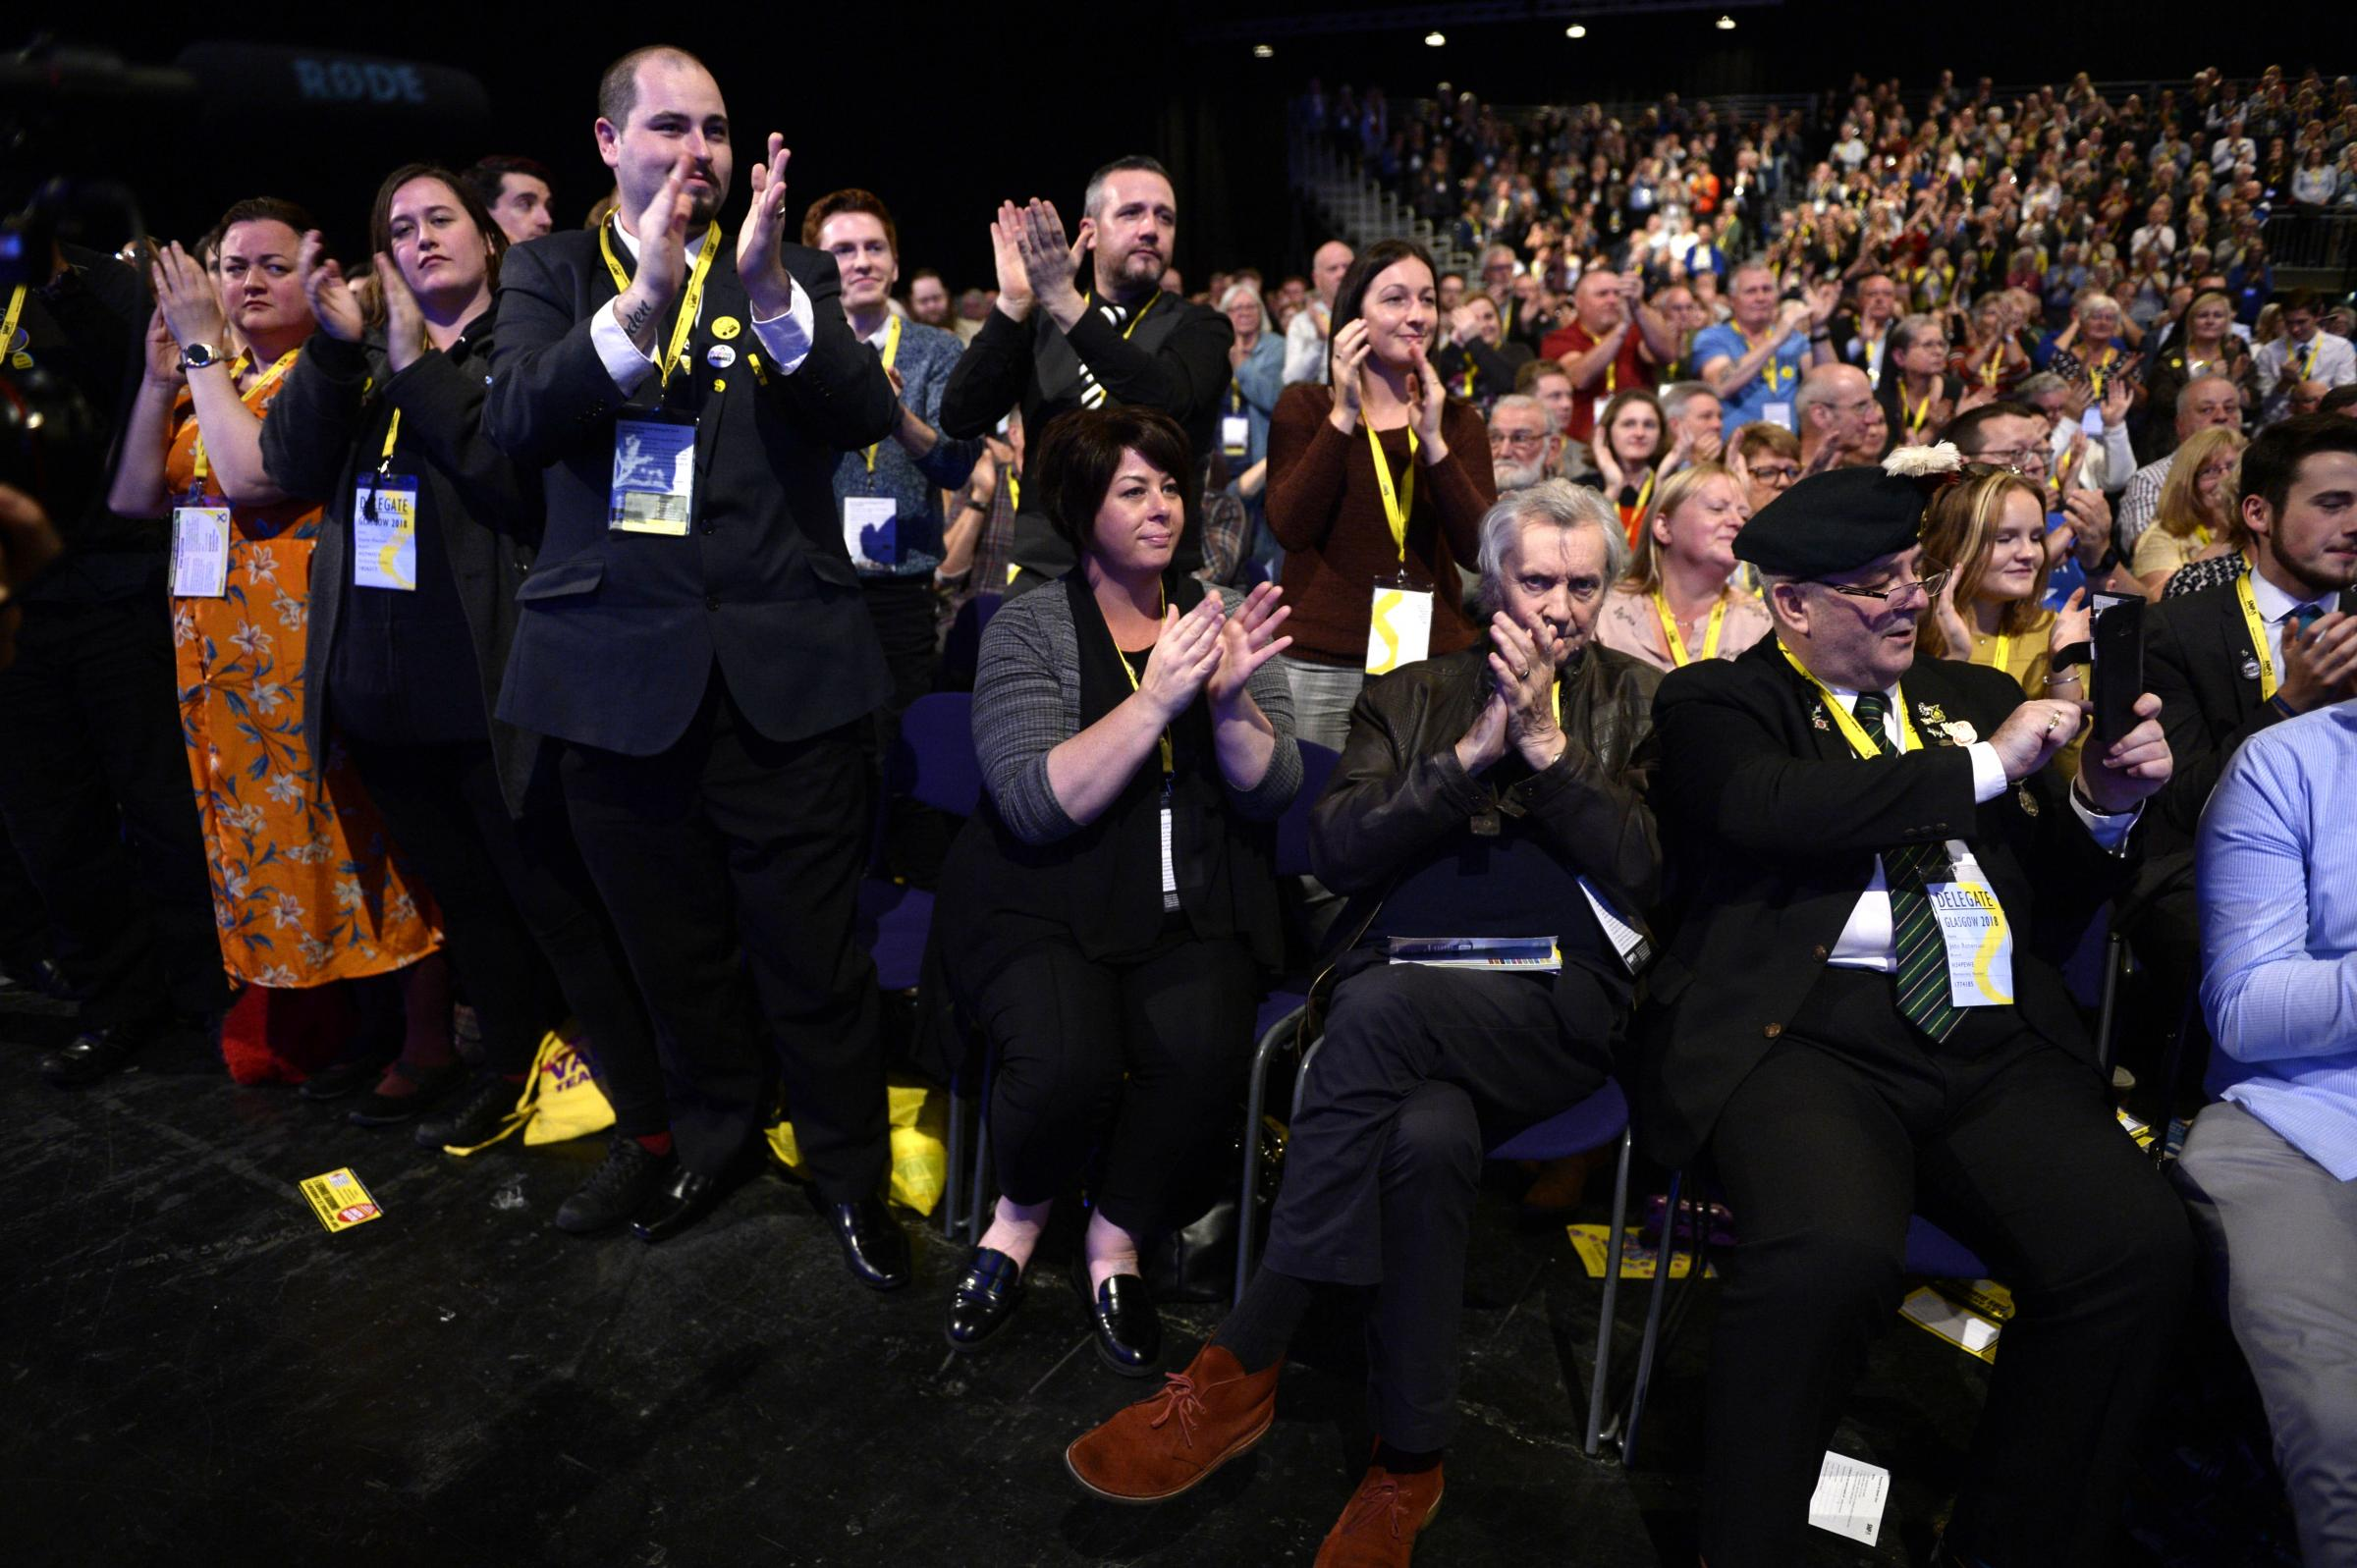 SNP members responded to the First Minister's conference address